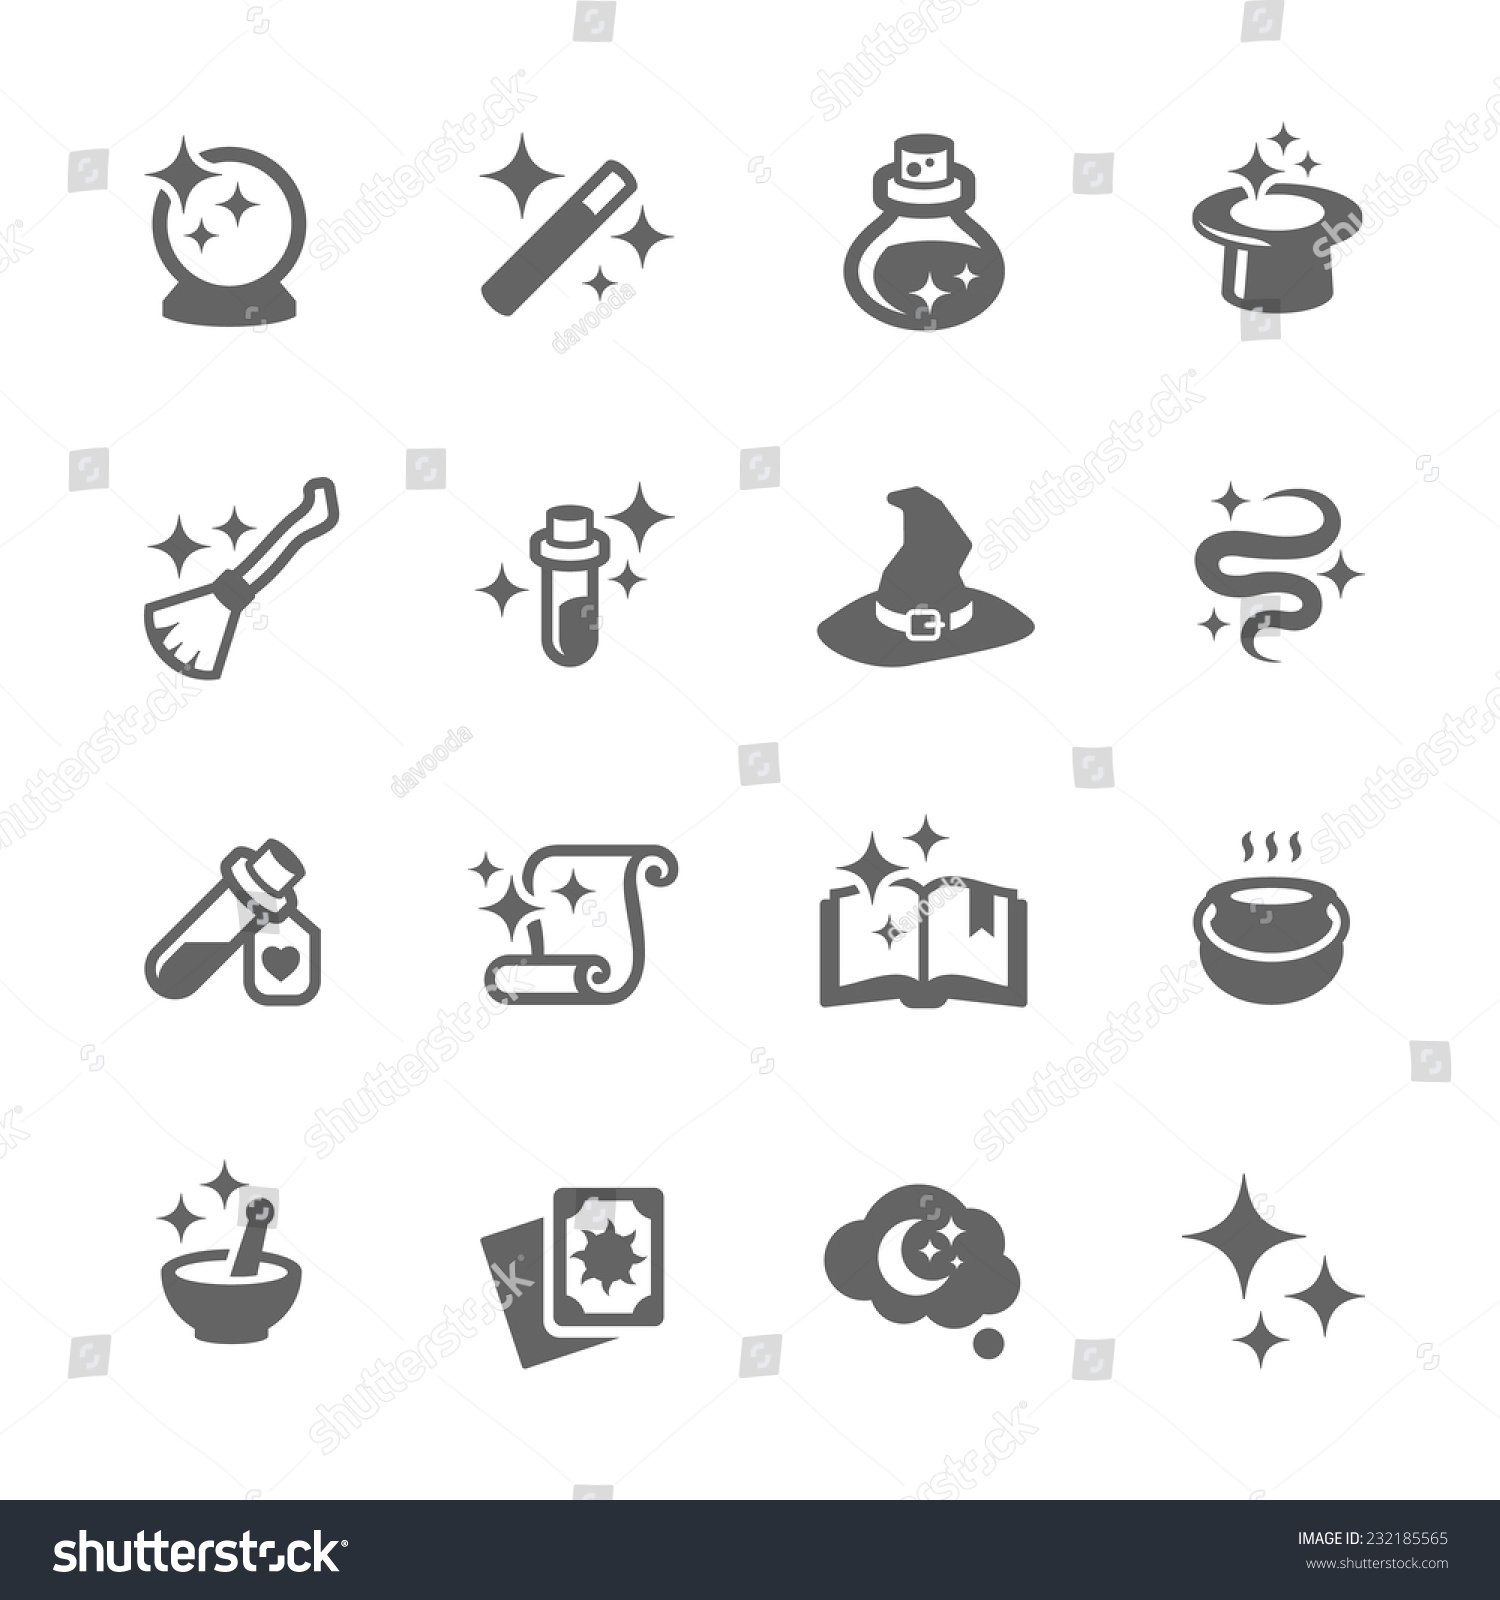 Simple Set Magic Related Vector Icons Stock Vector ...